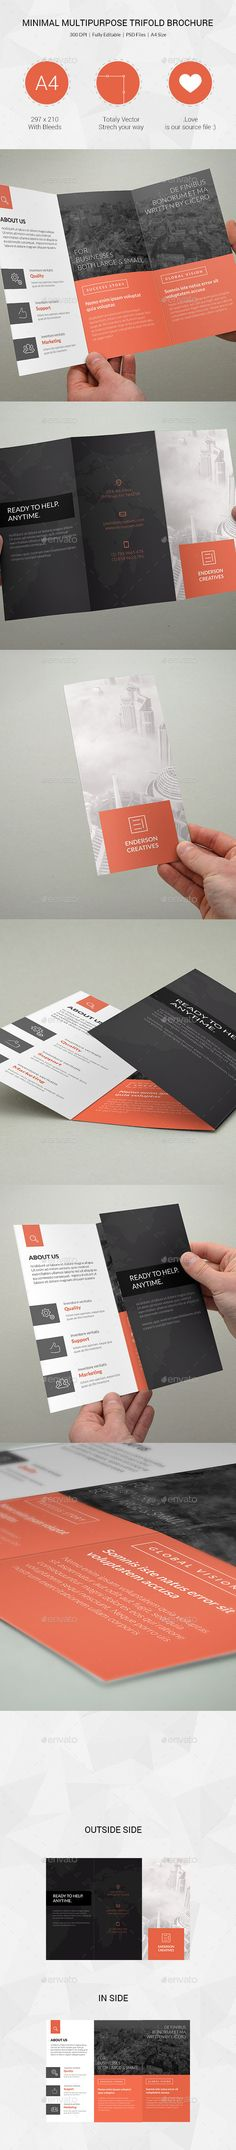 Minimal Multipurpose Trifold Brochure  09 — Photoshop PSD #multiple #services • Available here → https://graphicriver.net/item/minimal-multipurpose-trifold-brochure-09/11885113?ref=pxcr